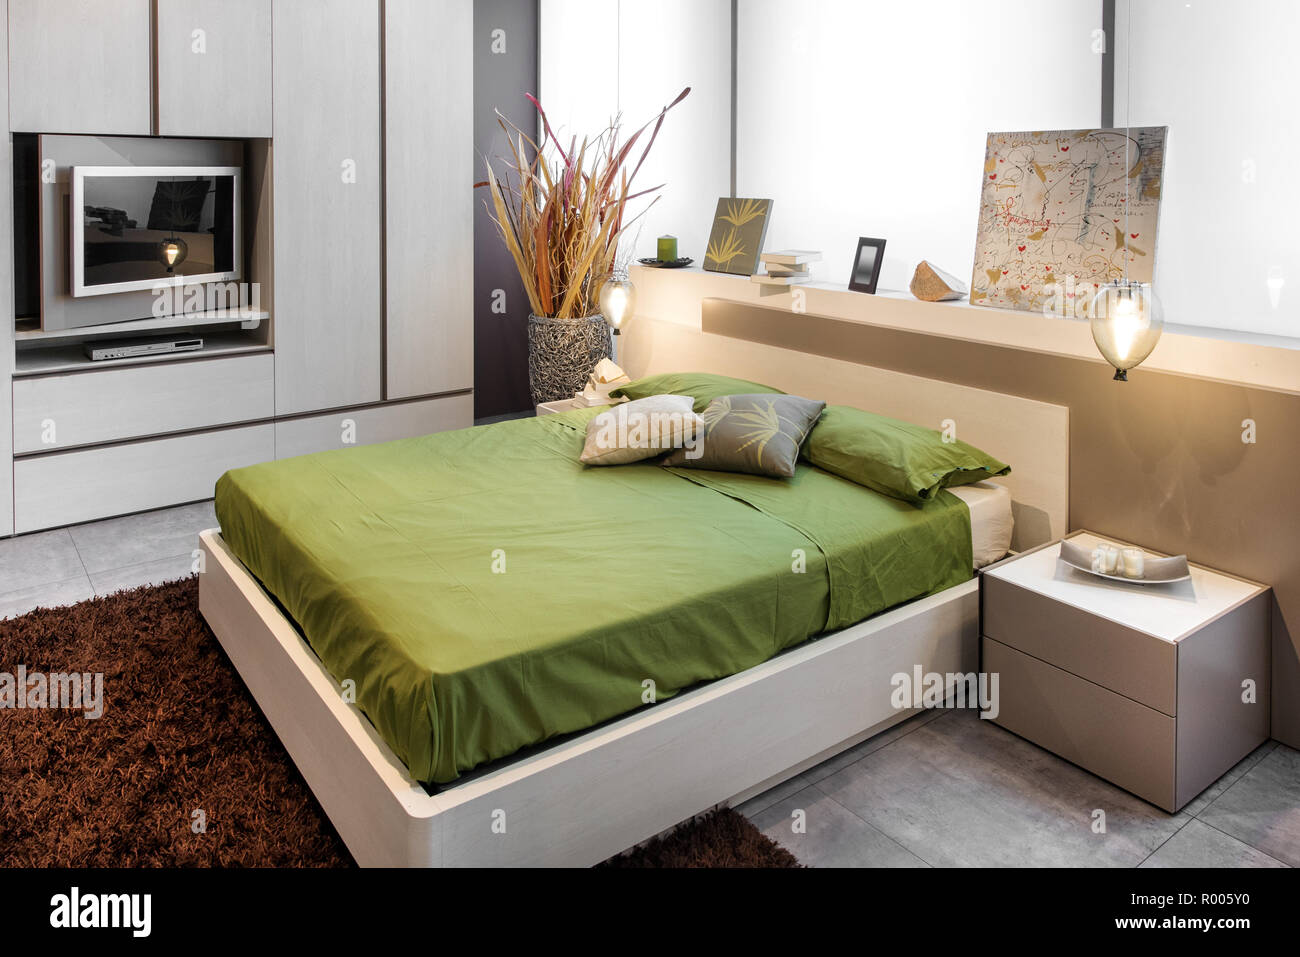 Modern bedroom design with high double bed with green linens and brown carpet on the floor - Stock Image